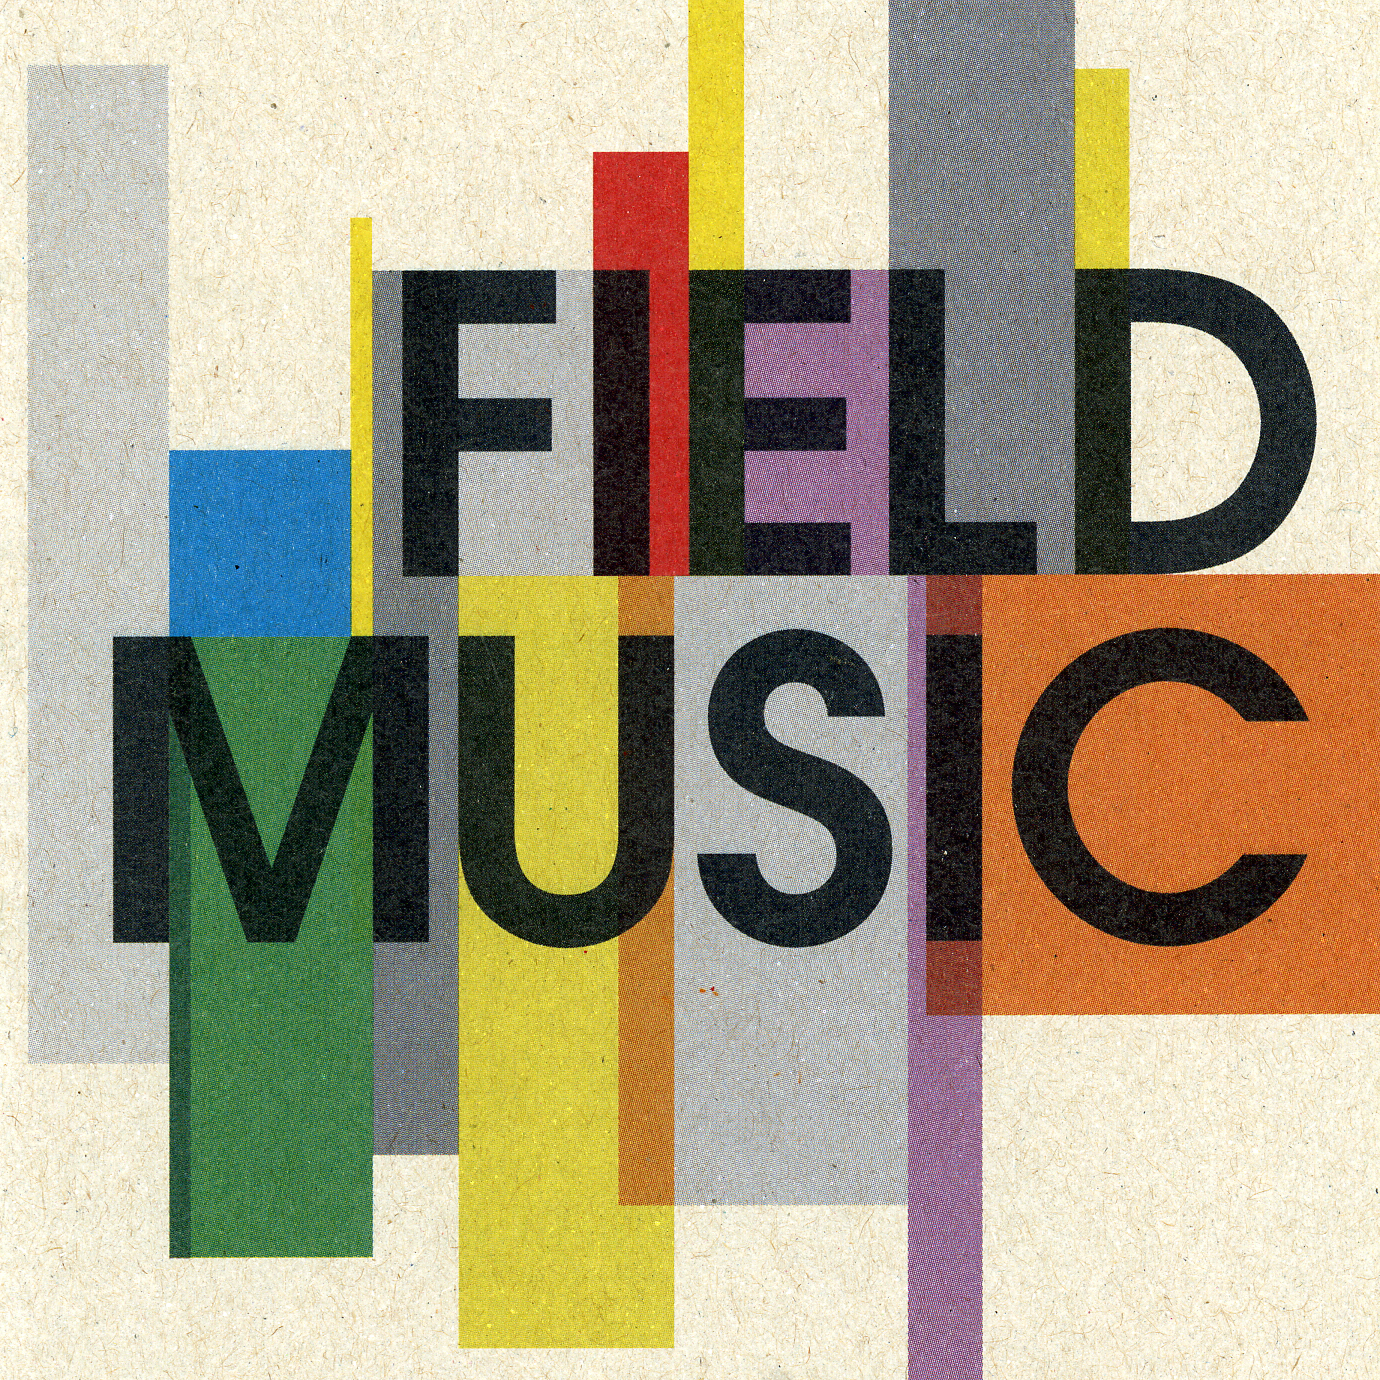 Field Music - Field Music (Measure) (Colv) (Ogv) (Red) (Ylw)